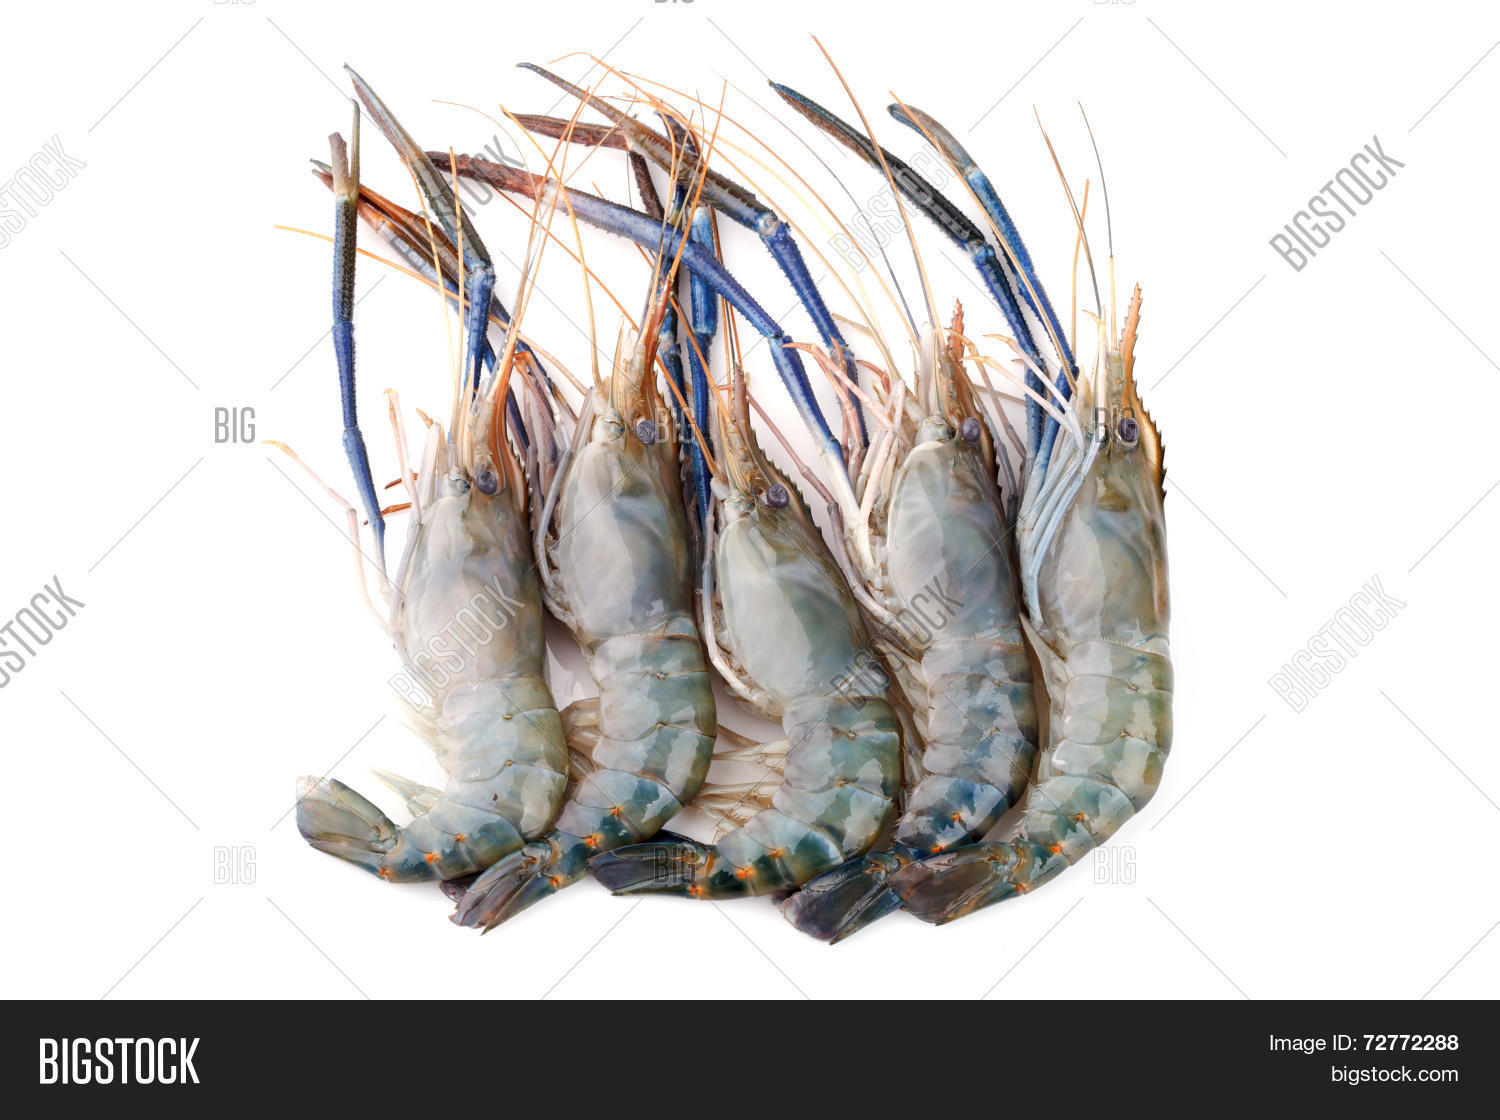 Giant Freshwater Prawn Image & Photo (Free Trial) | Bigstock